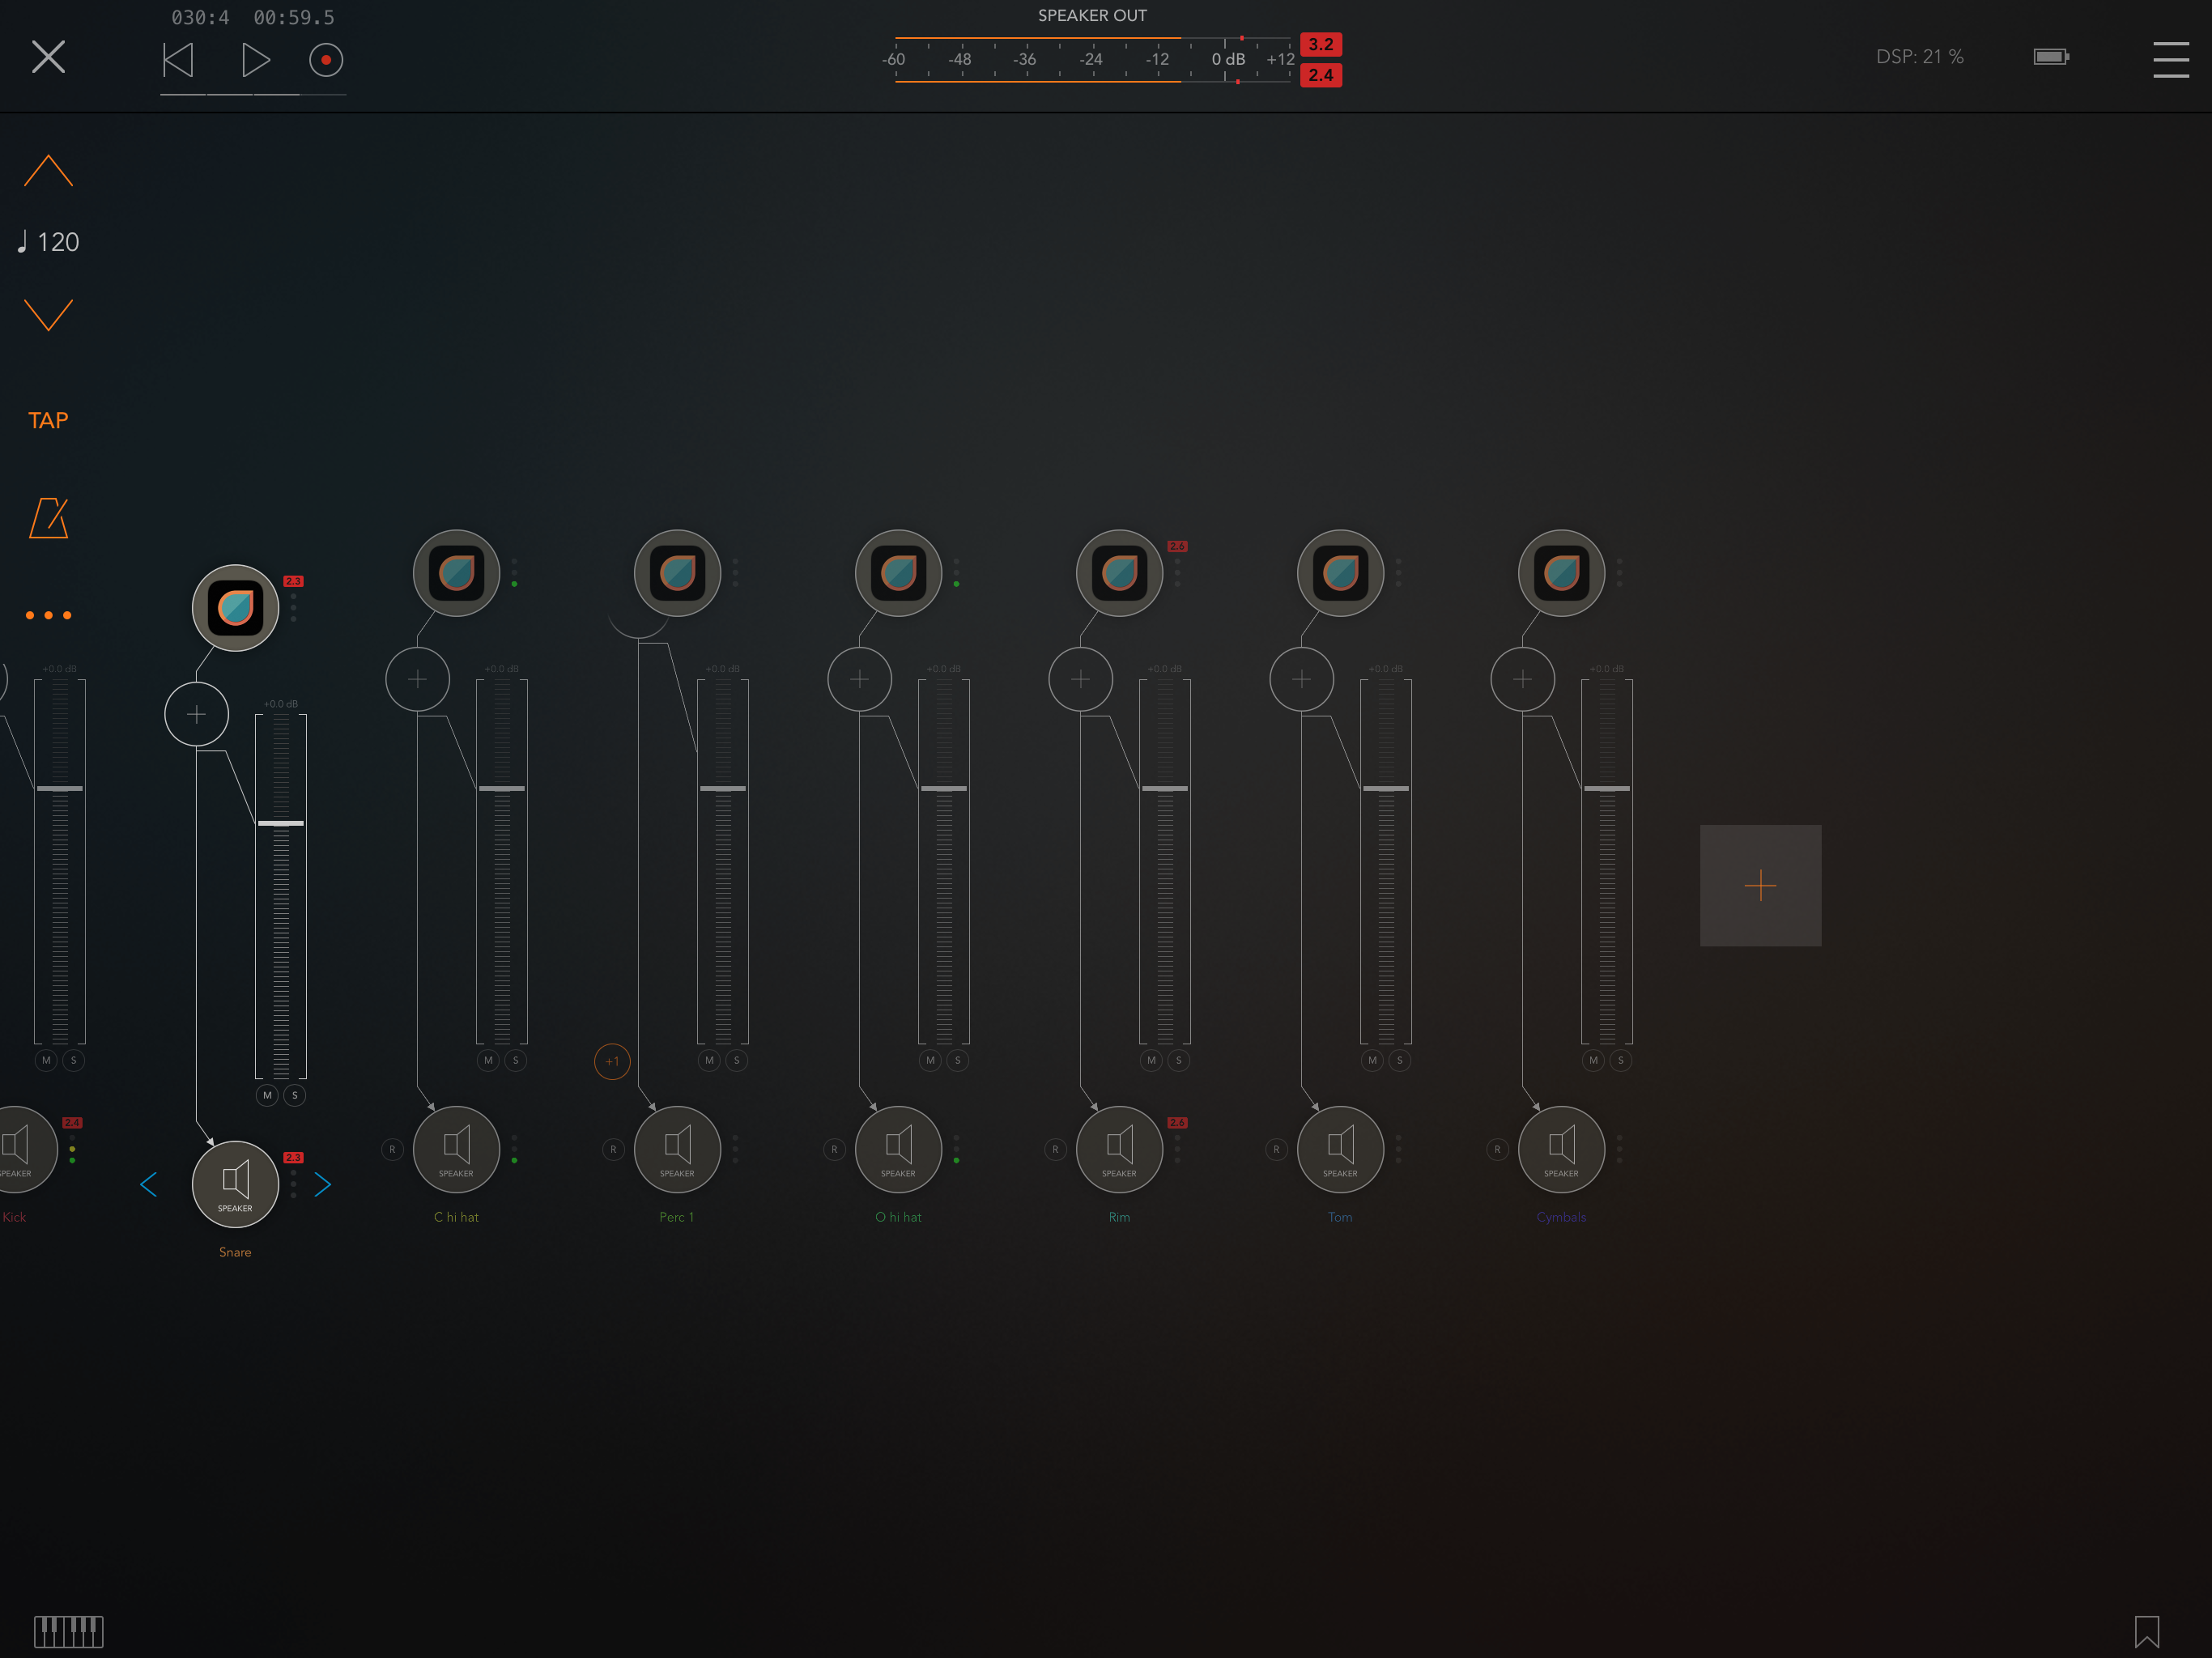 PATTERNING 2 Drum Machine - Pre Release Demo & Tour